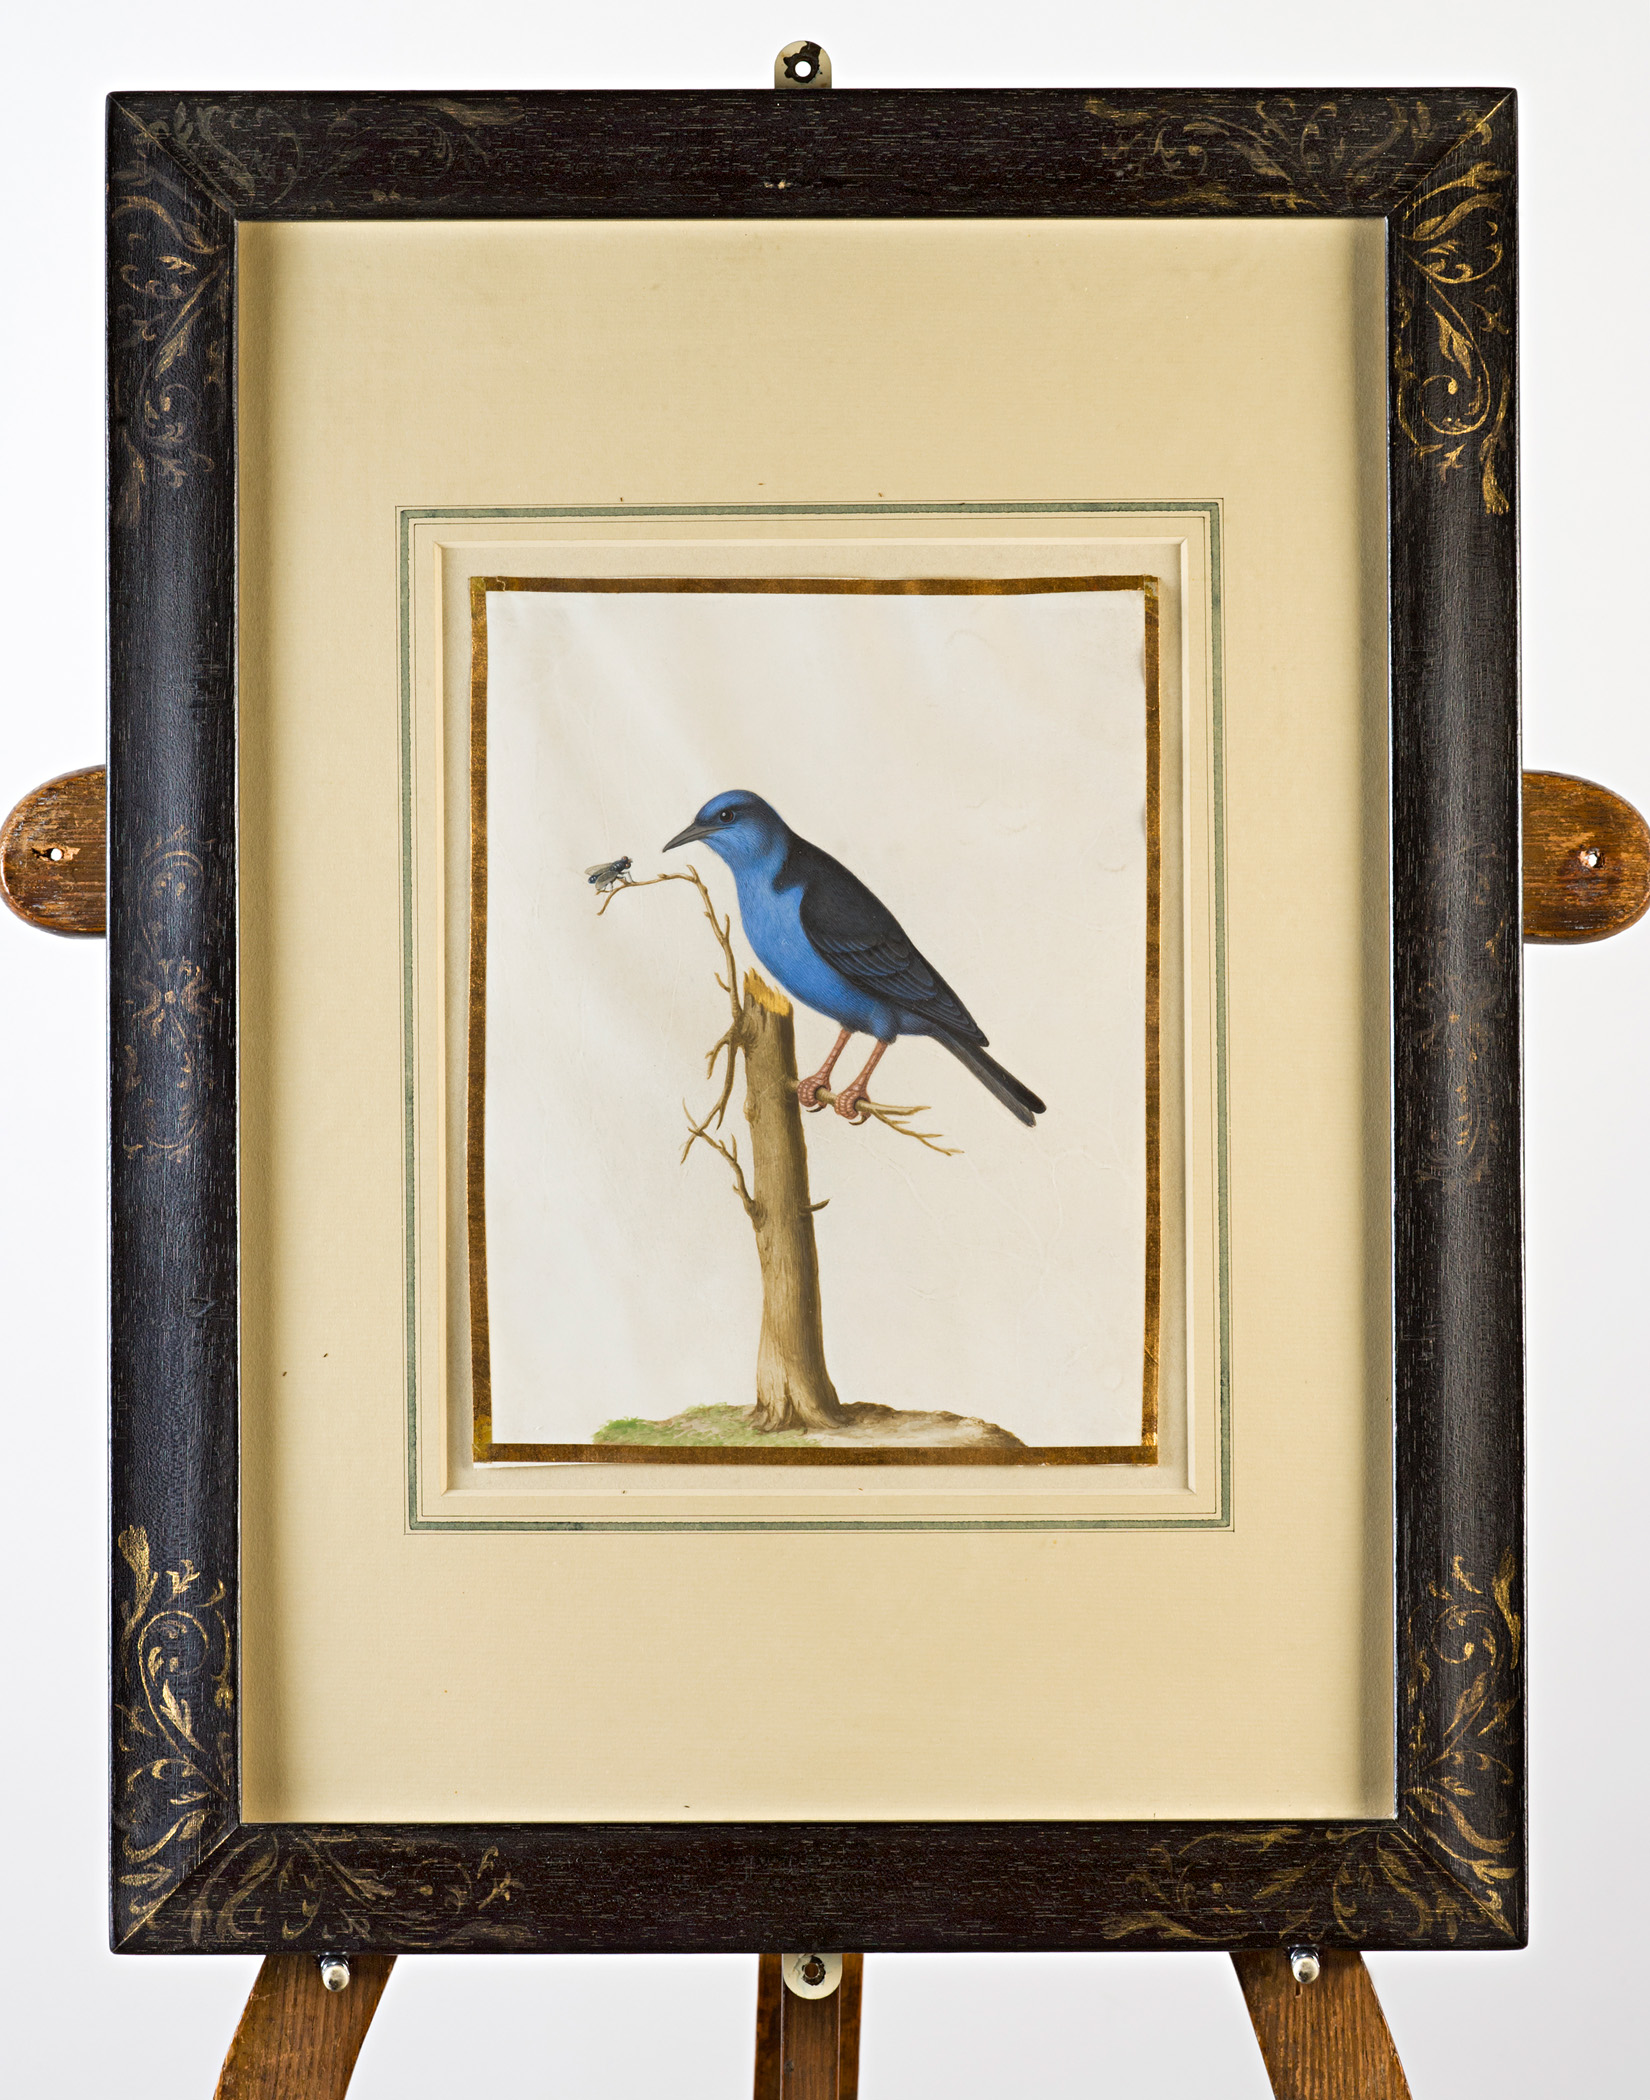 Bluebird and insect on branch, Attributed to Claude Aubriet (c.1665-1742).